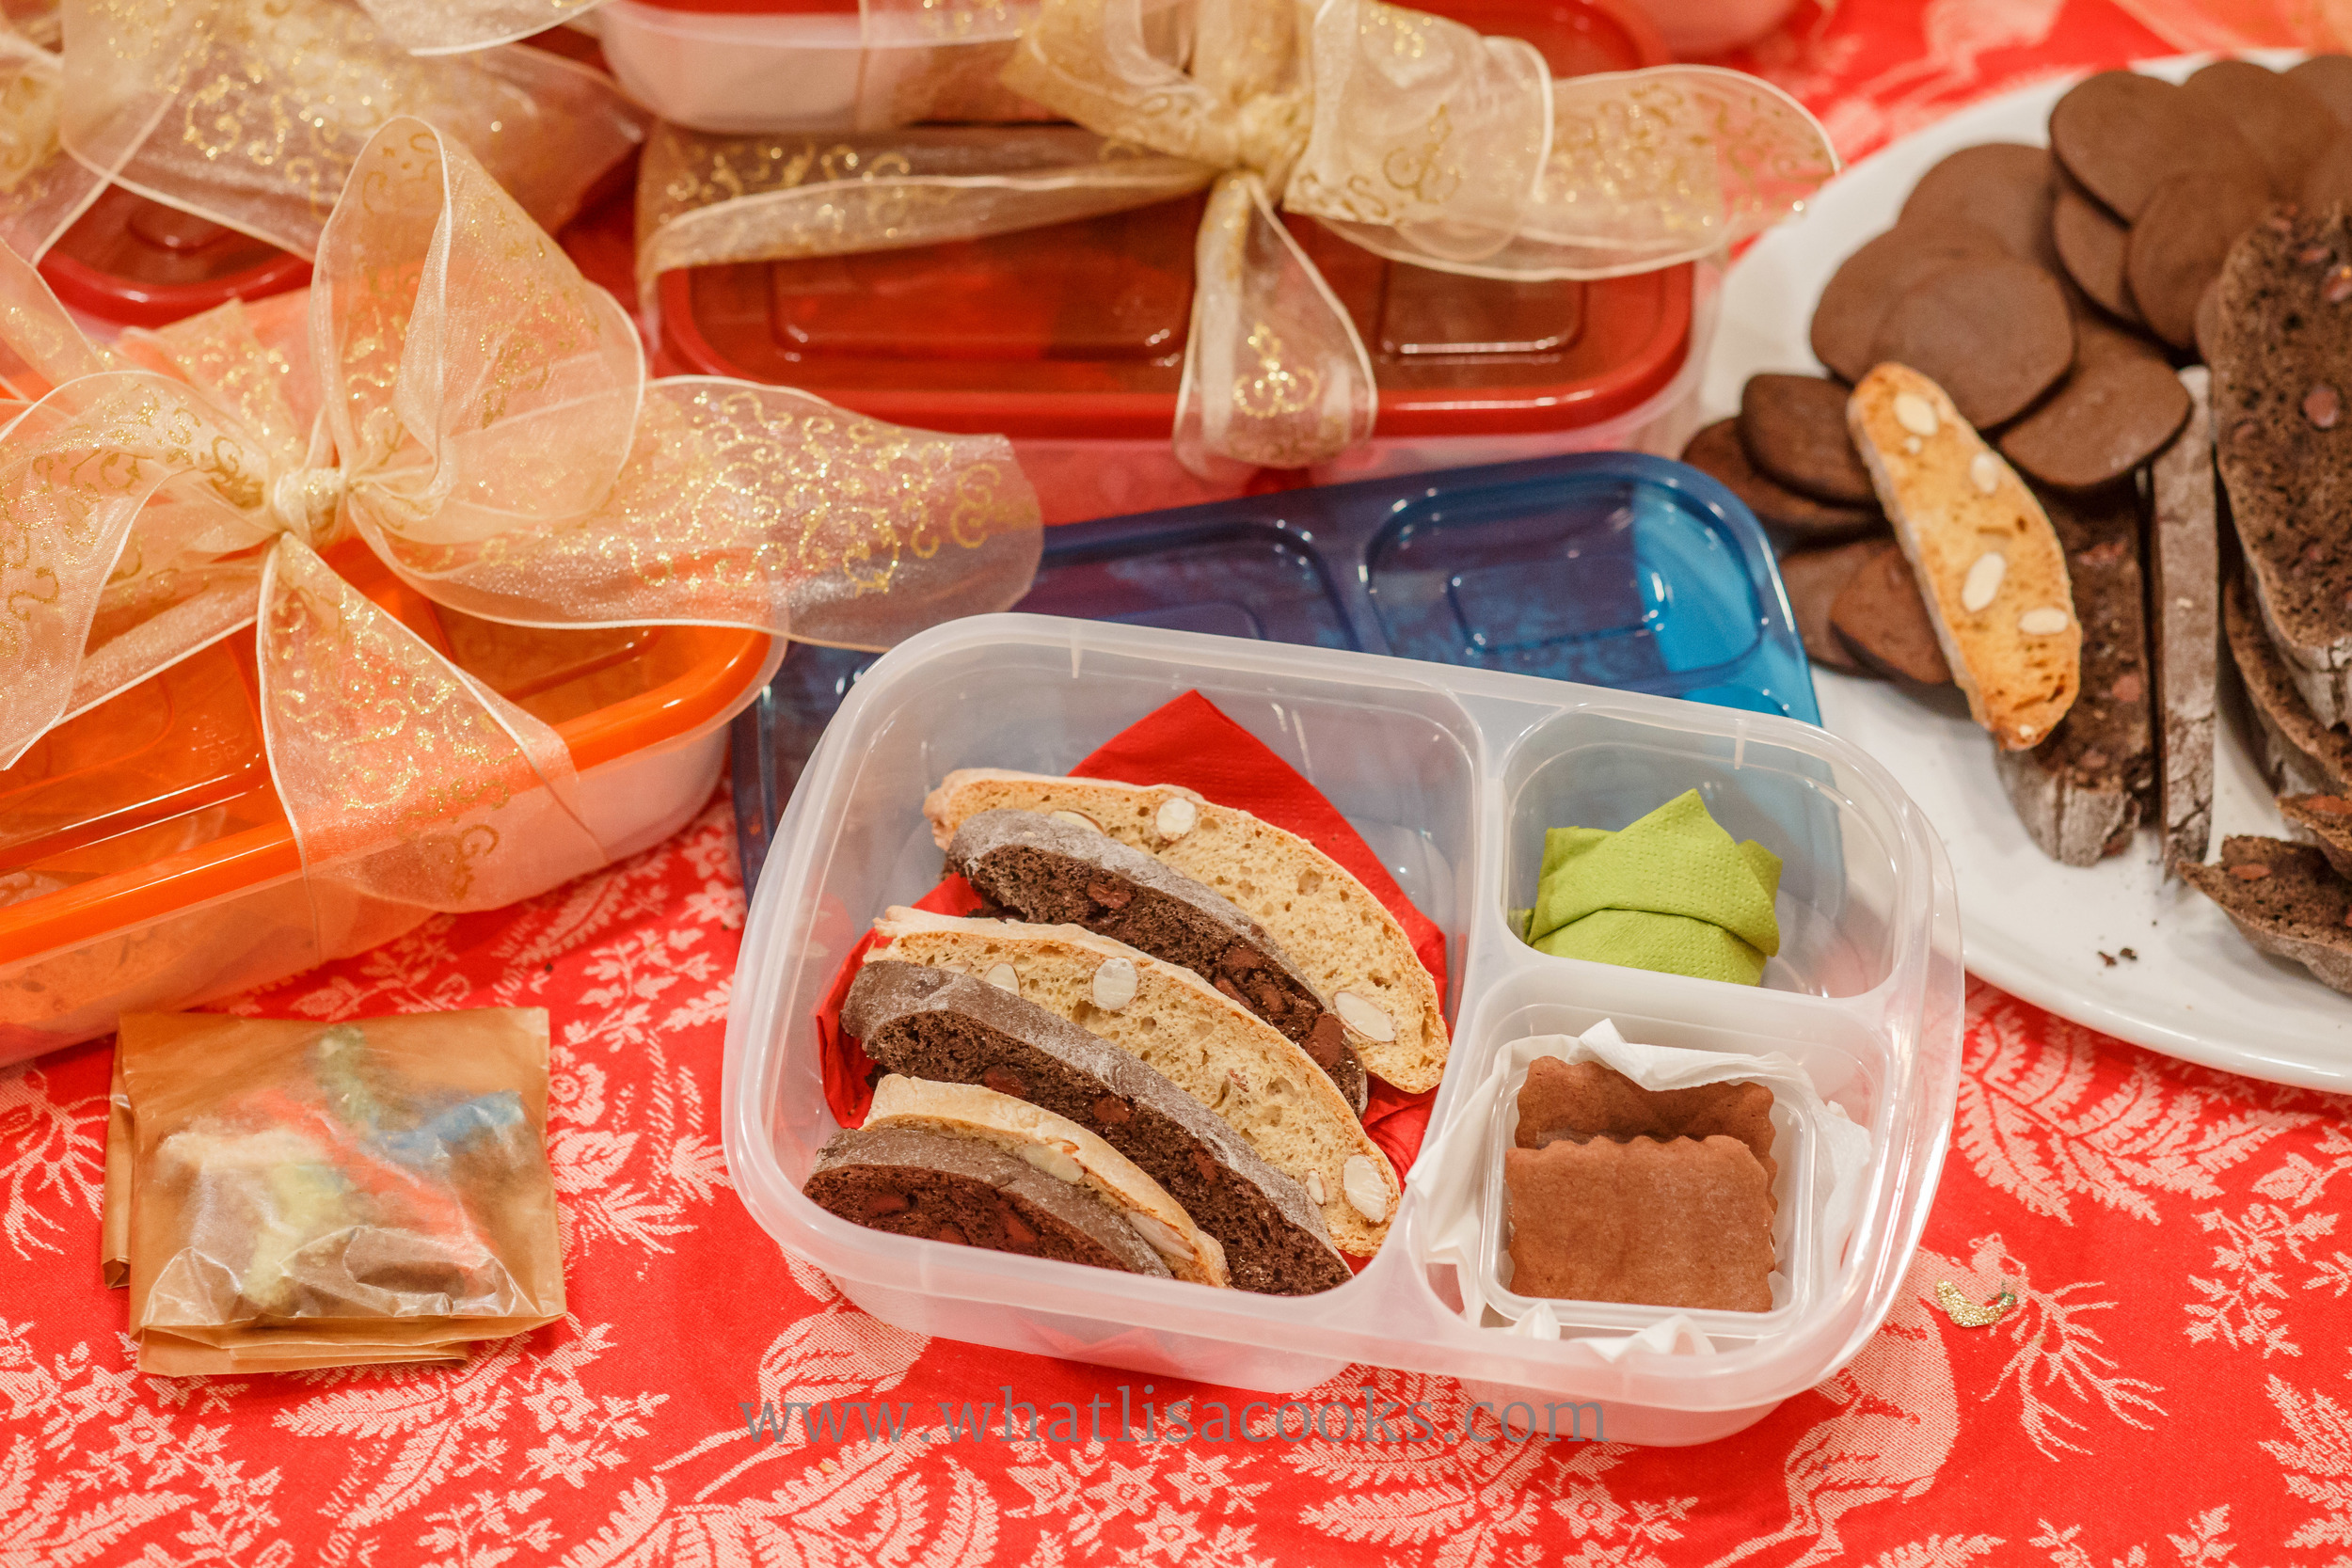 Holiday & Christmas gift idea for school teachers: Give your teacher a gift they can enjoy now and use all year long - a lunch box packed with treats! from WhatLisaCooks.com